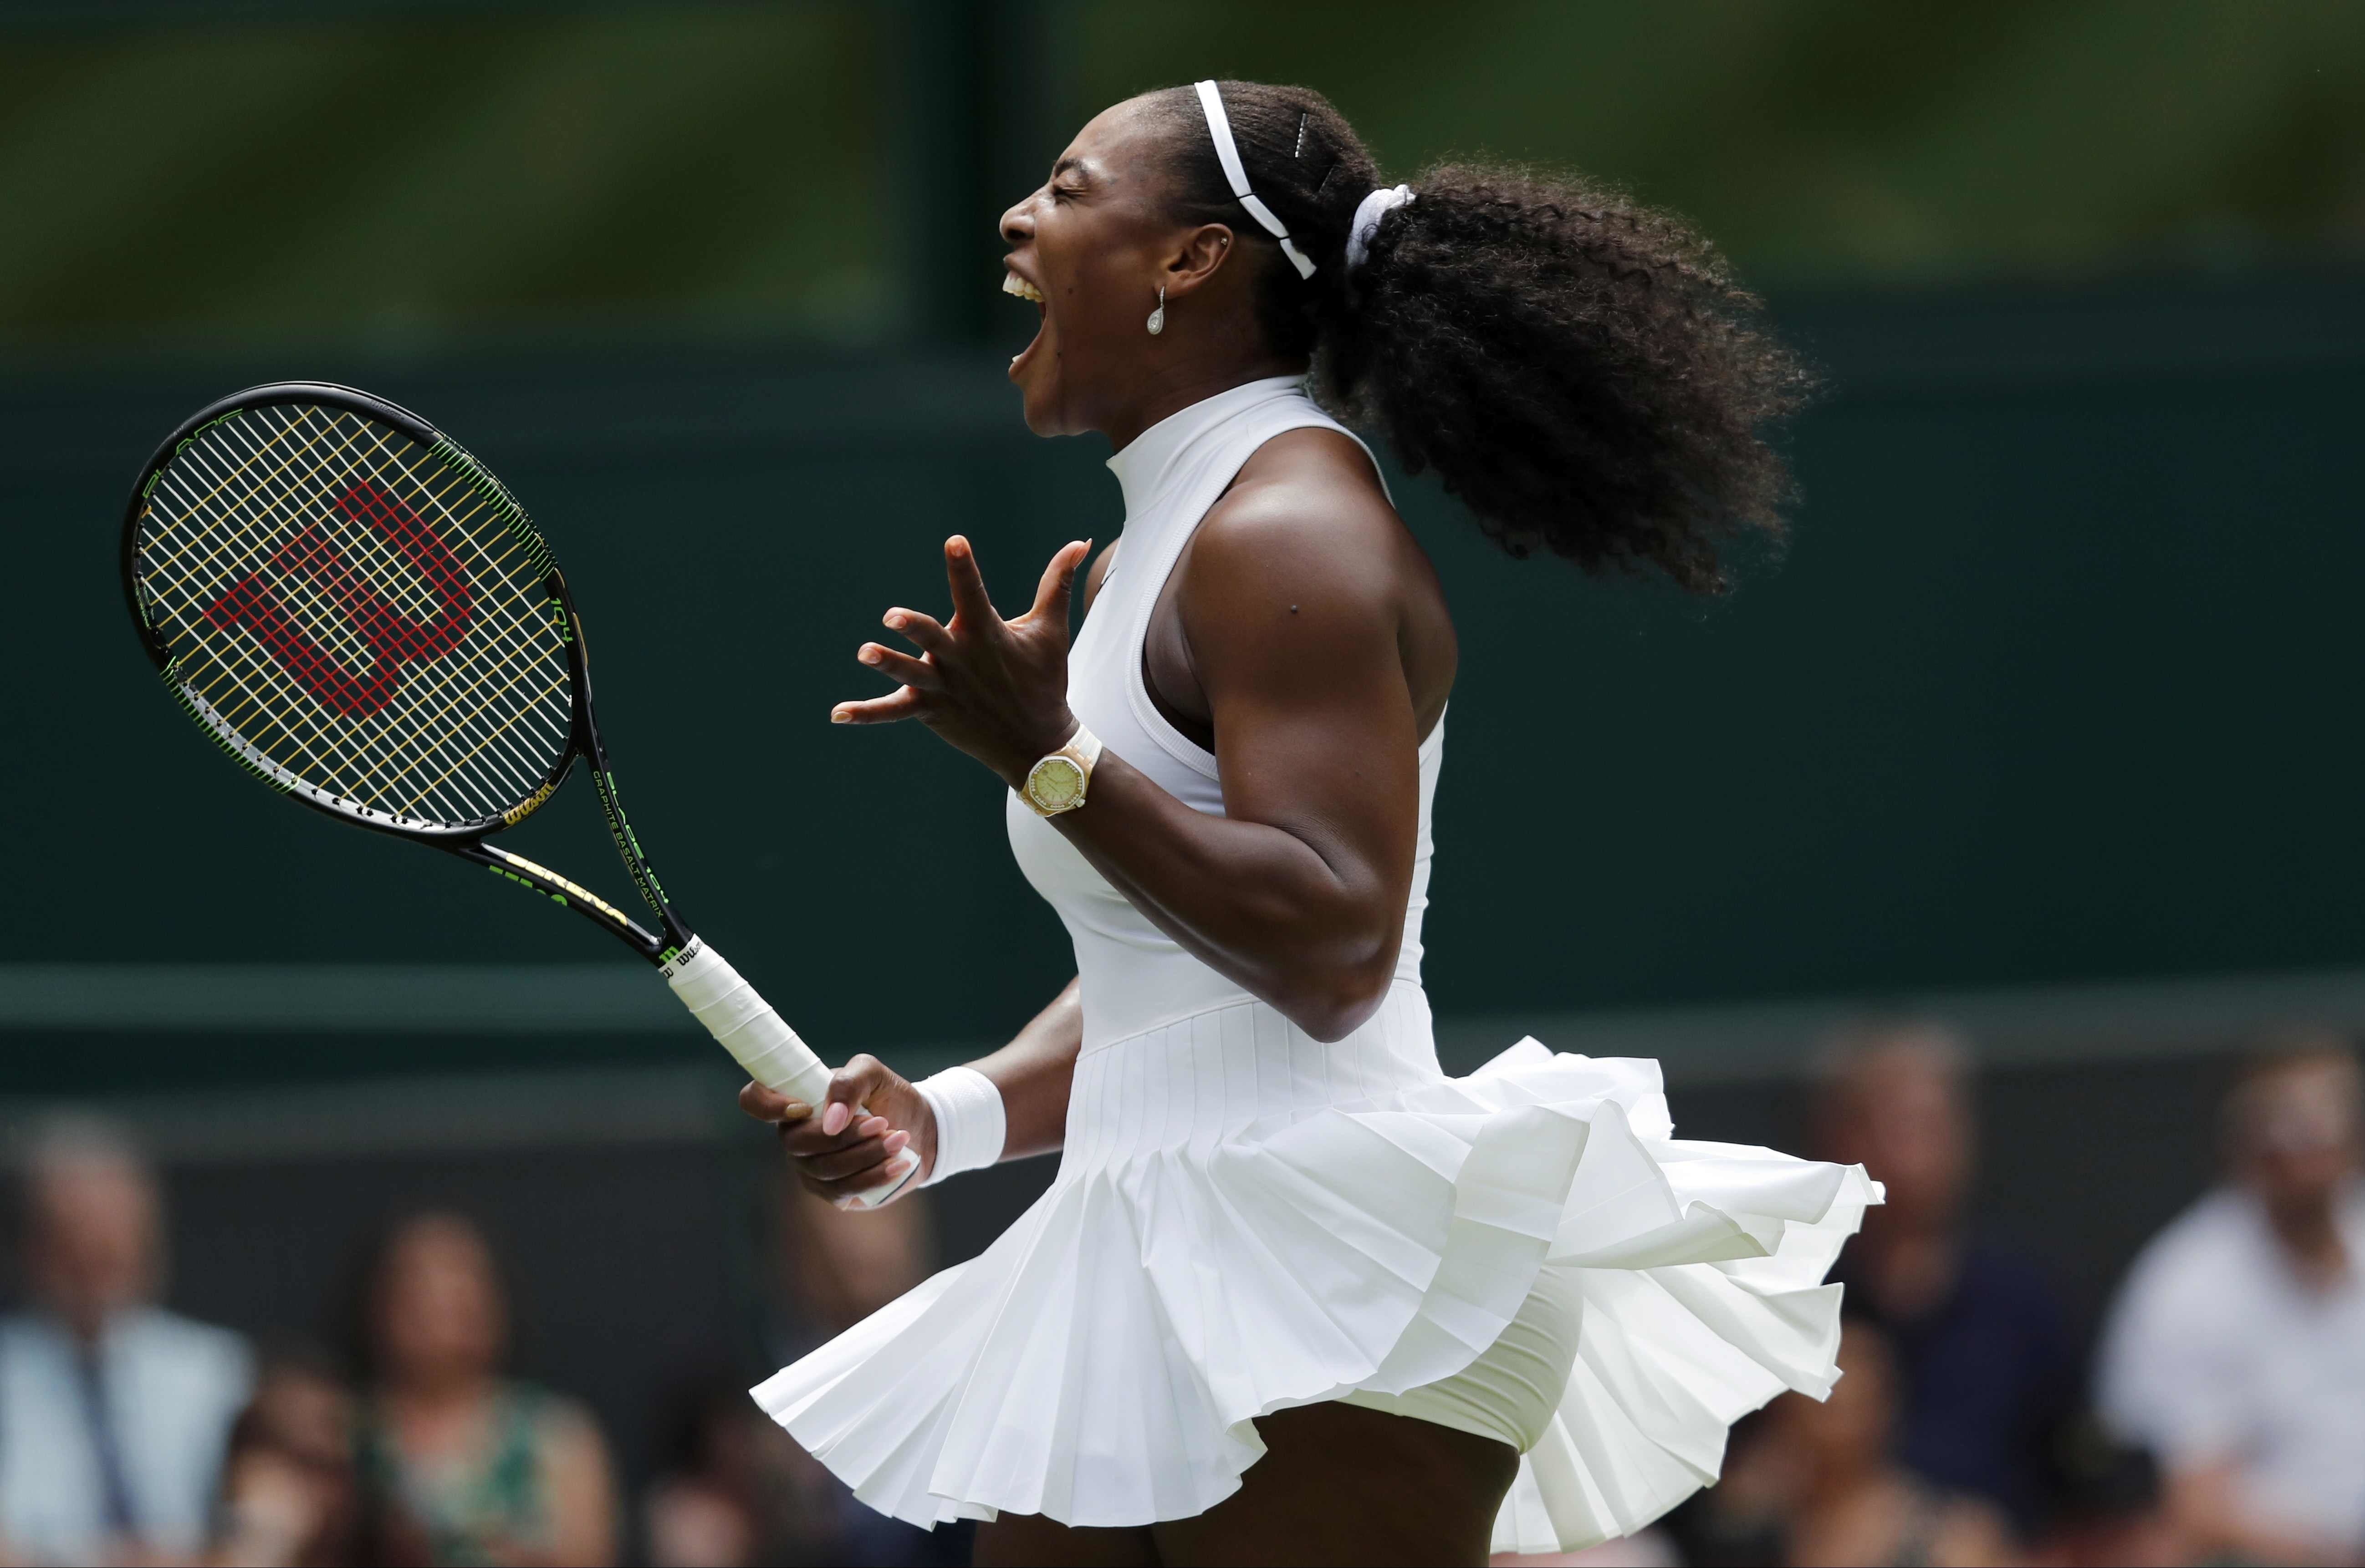 FILE - In this Tuesday, June 28, 2016 file photo Serena Williams of the U.S celebrates a point against Amara Safikovic of Switzerland during their women's singles match on day two of the Wimbledon Tennis Championships in London. (AP Photo/Ben Curtis, File